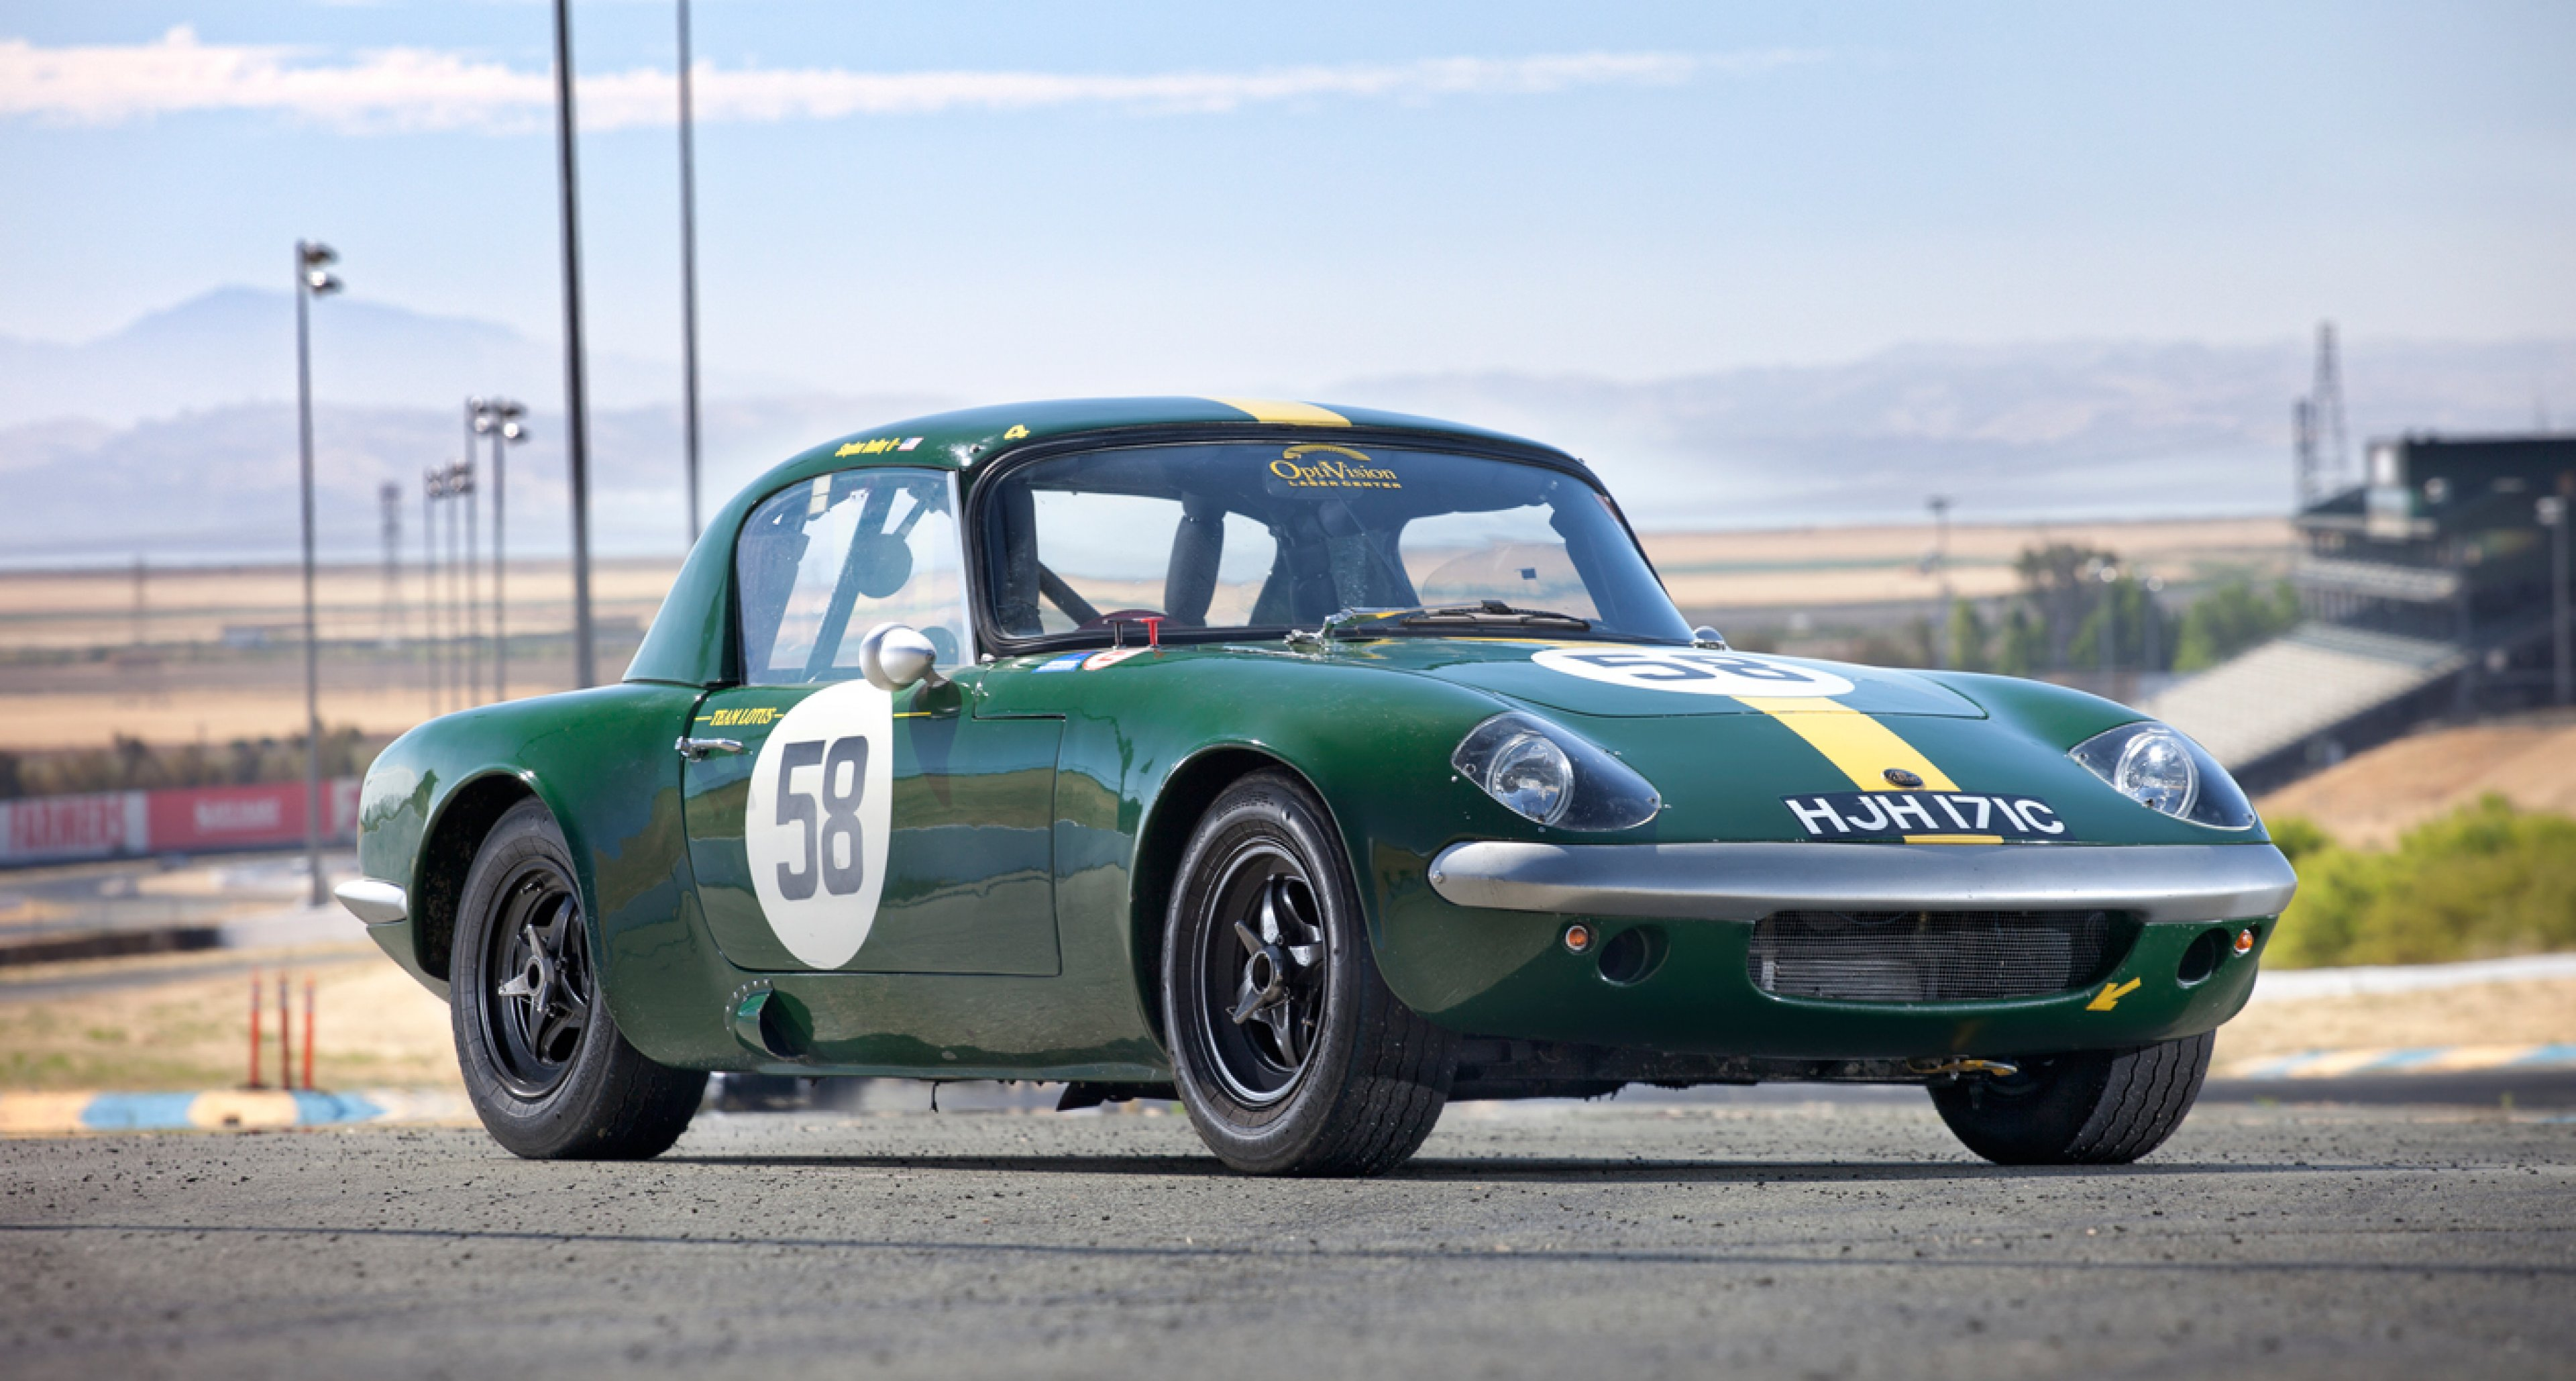 1964 Lotus Elan 26R Factory Race Car, estimate GBP 140,000 - 180,000.